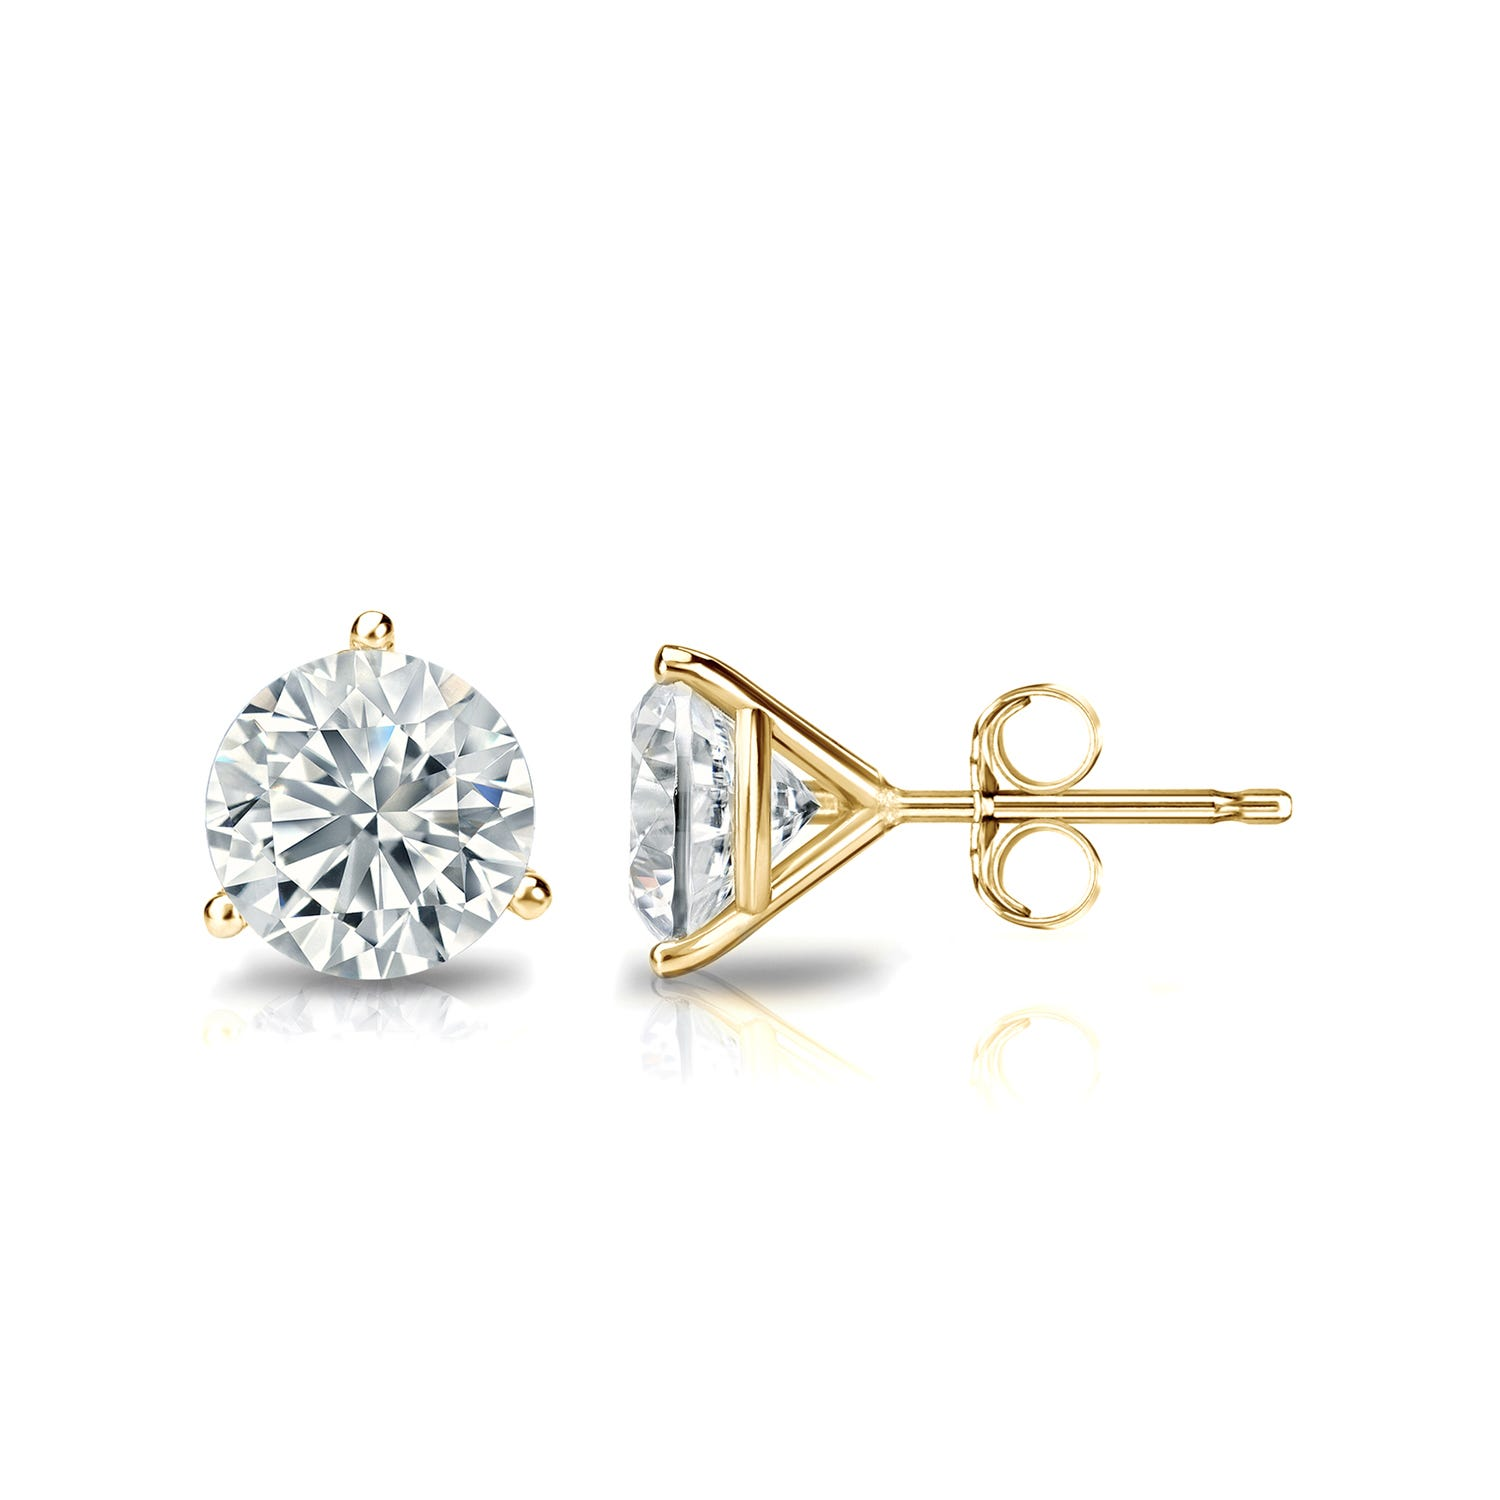 1 CTTW Round Diamond Solitaire Stud Earrings IJ I2 in 14K Yellow Gold IGI Certified 3-Prong Setting